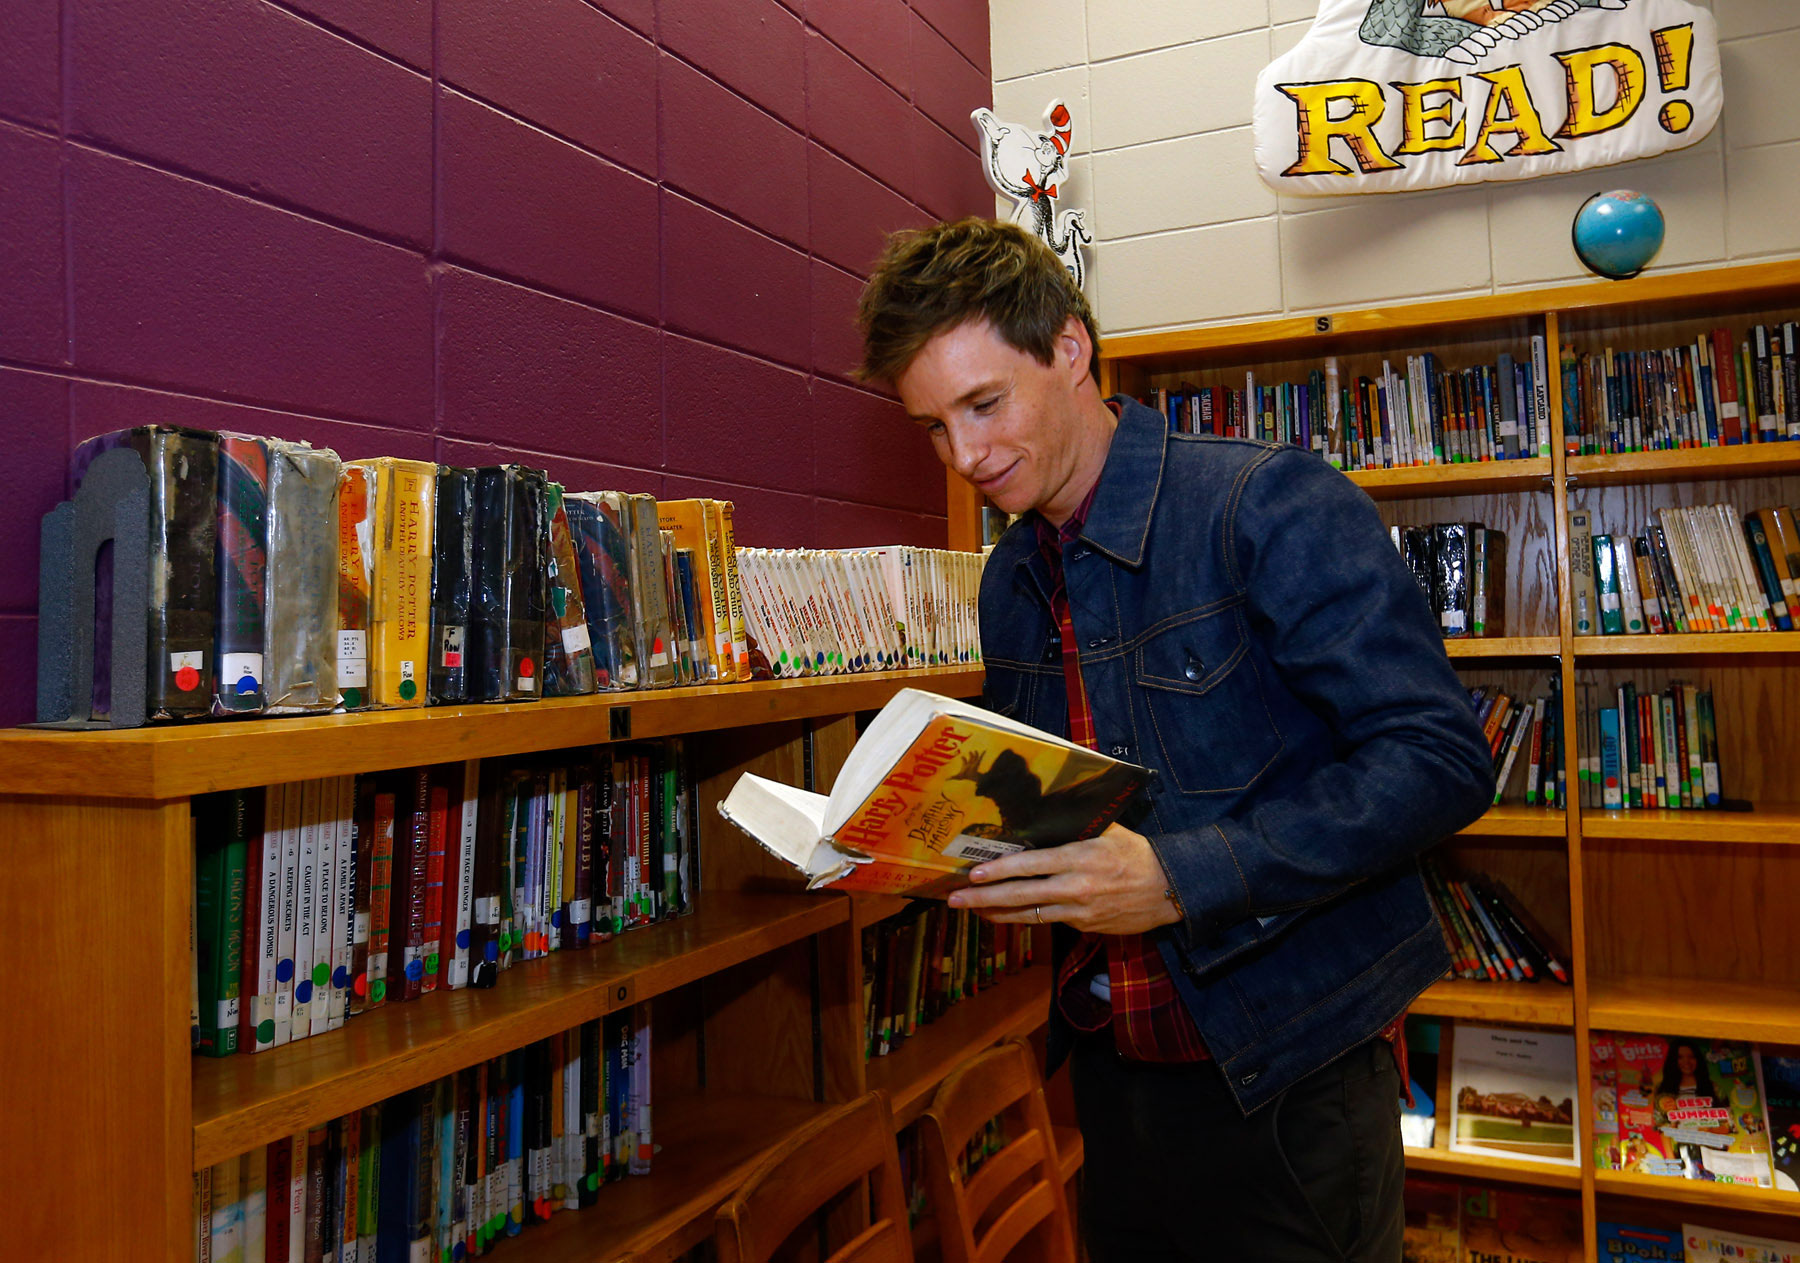 """Eddie Redmayne from """"Fantastic Beasts: The Crimes of Grindelwald"""" reads a book as he helps celebrate Wizarding World Day at Parkside Middle School in Baileyton, AL.  (Photo by Butch Dill/Getty Images)"""